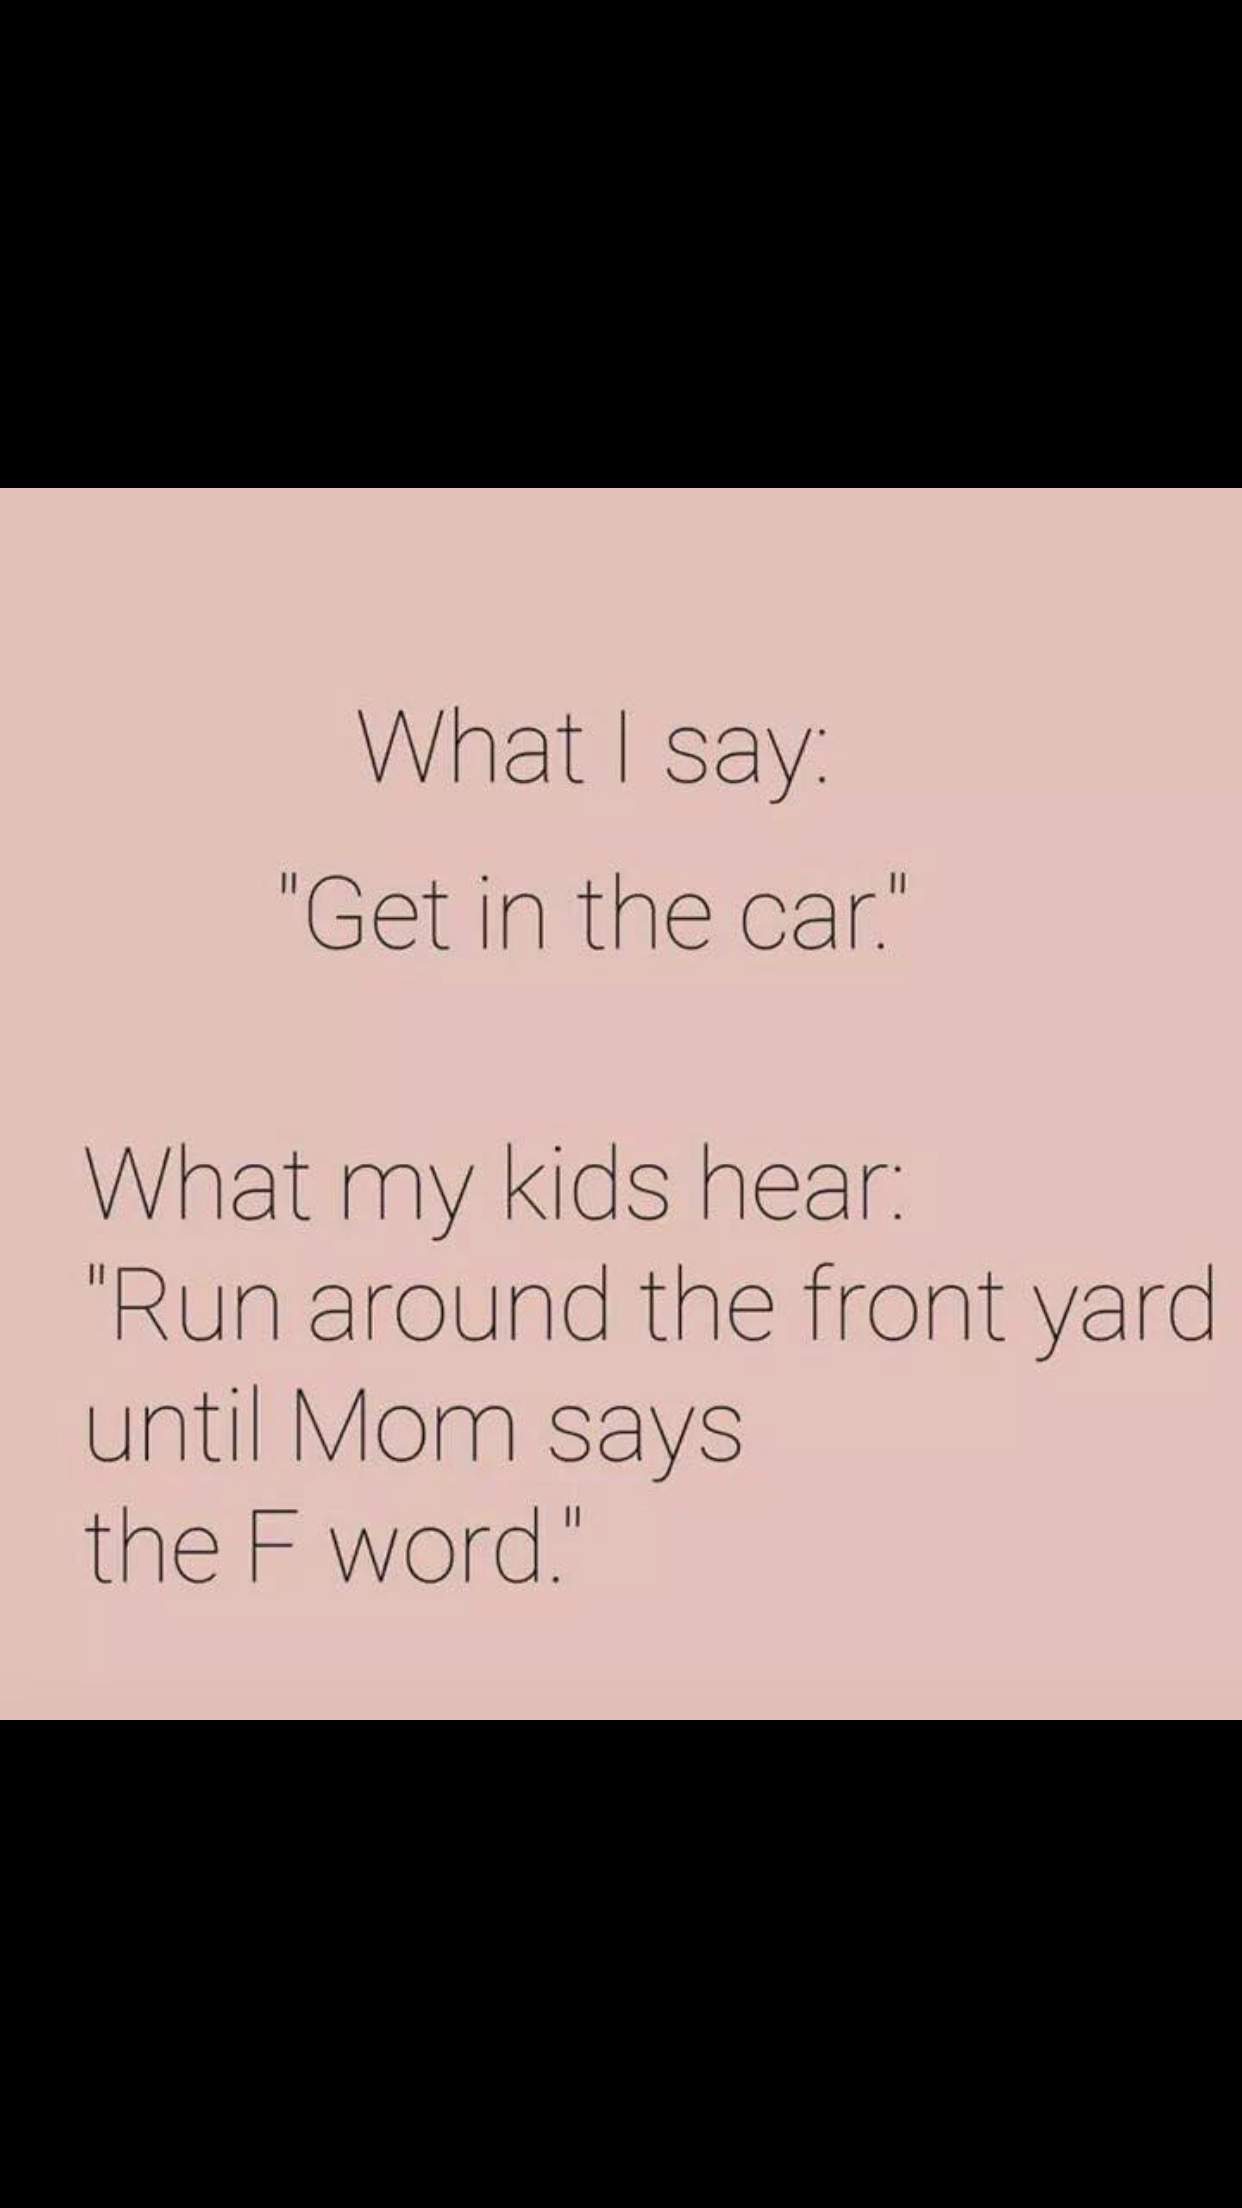 Pin By Dianne Tims On Good One Funny Mom Quotes Mommy Humor Mom Humor